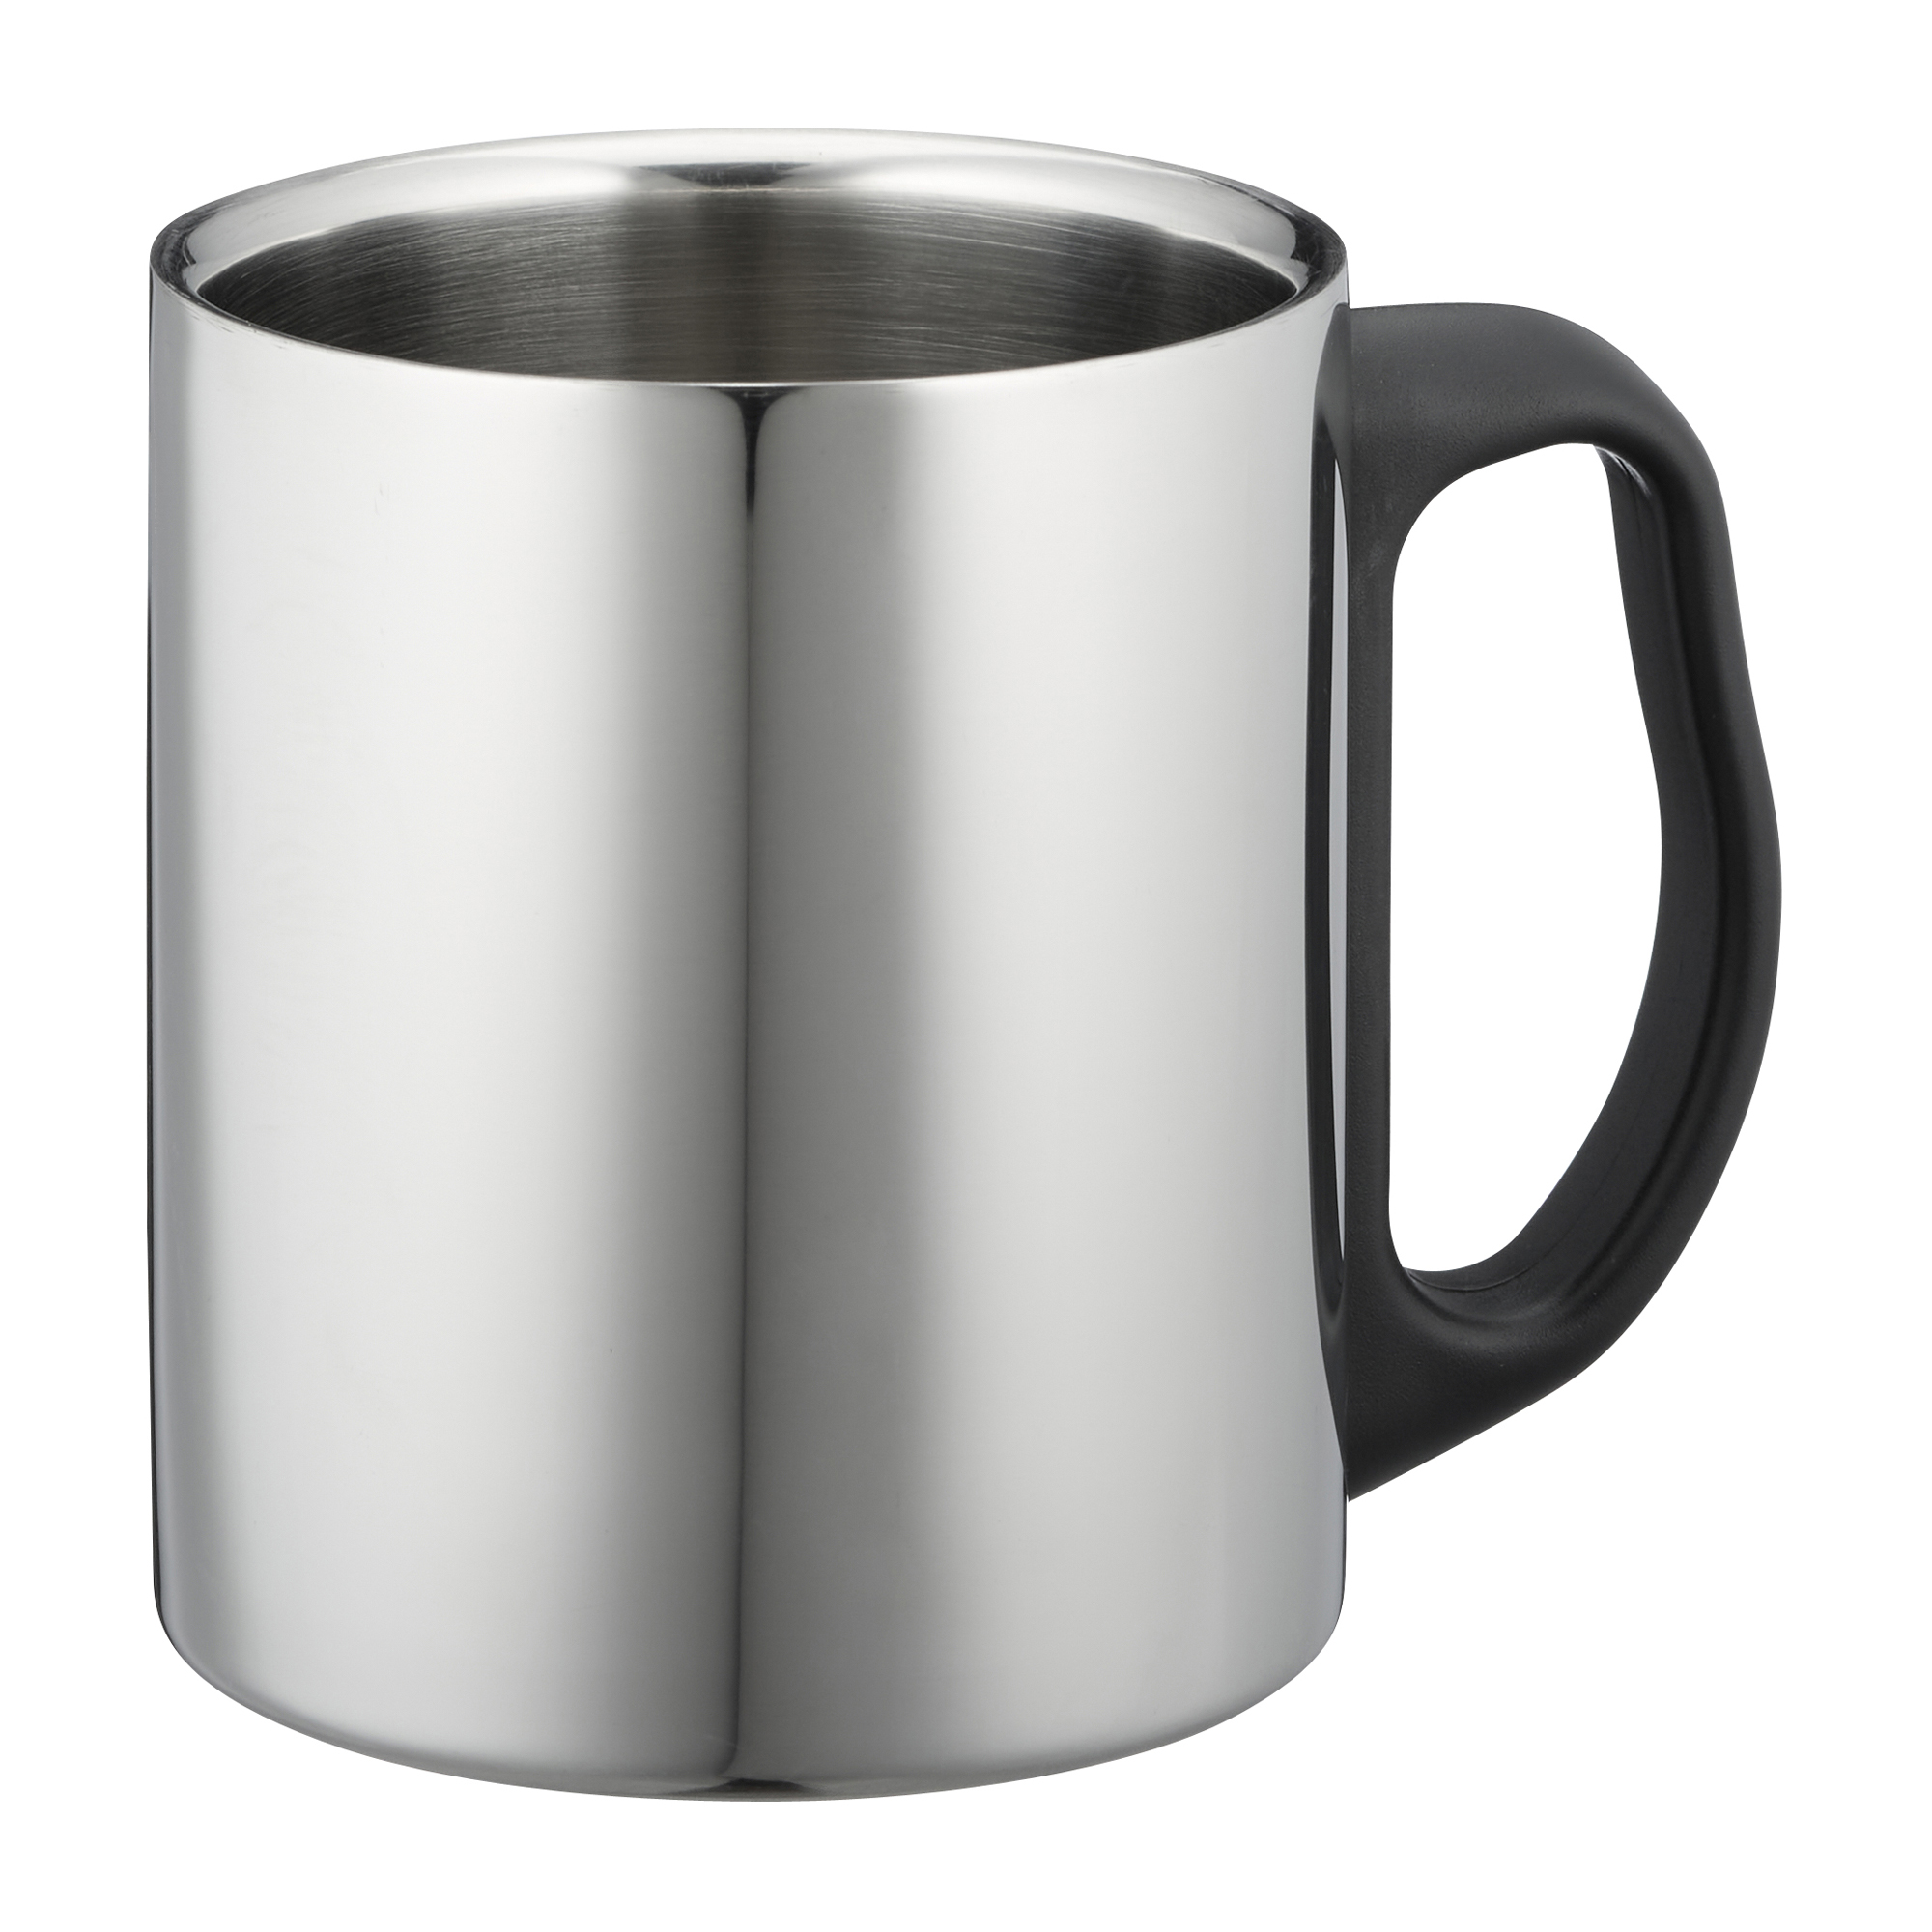 Stainless Steel Thermo Cup 300 ml